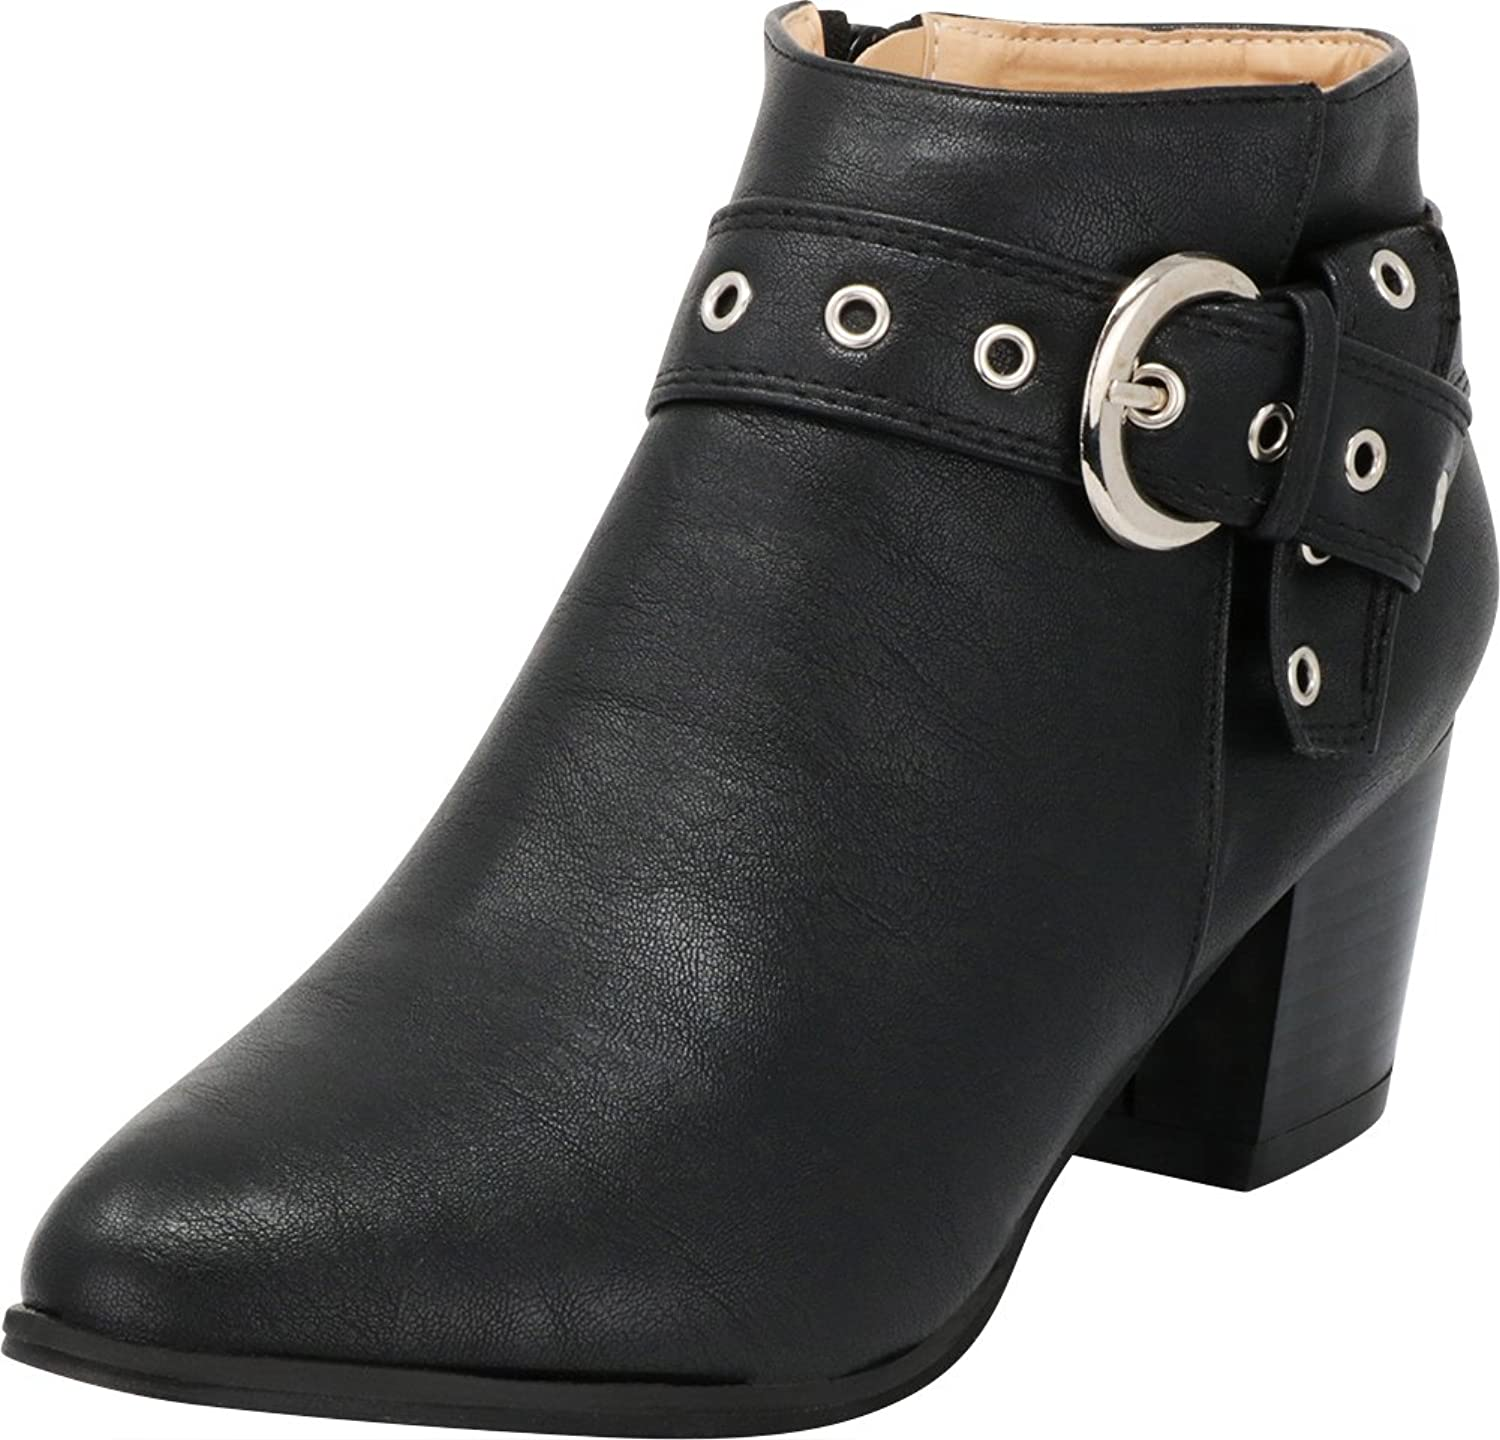 Cambridge Select Women's Closed Almond Toe Western Moto Wraparound Knot Strap Eyelet Chunky Stacked Block Heel Ankle Bootie